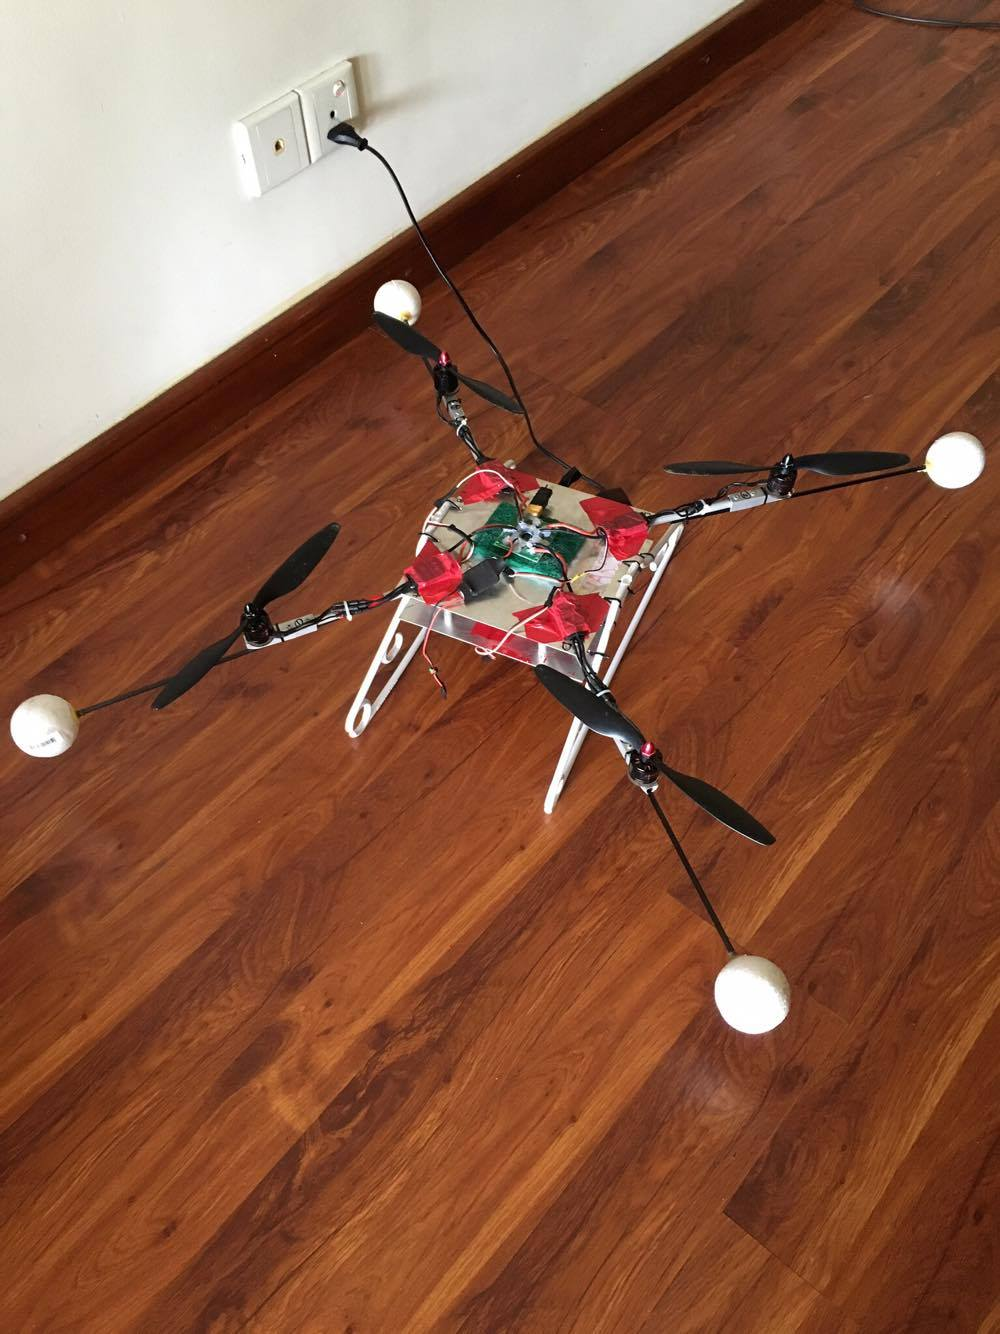 Picture of How to Make a Drone - for Dummies